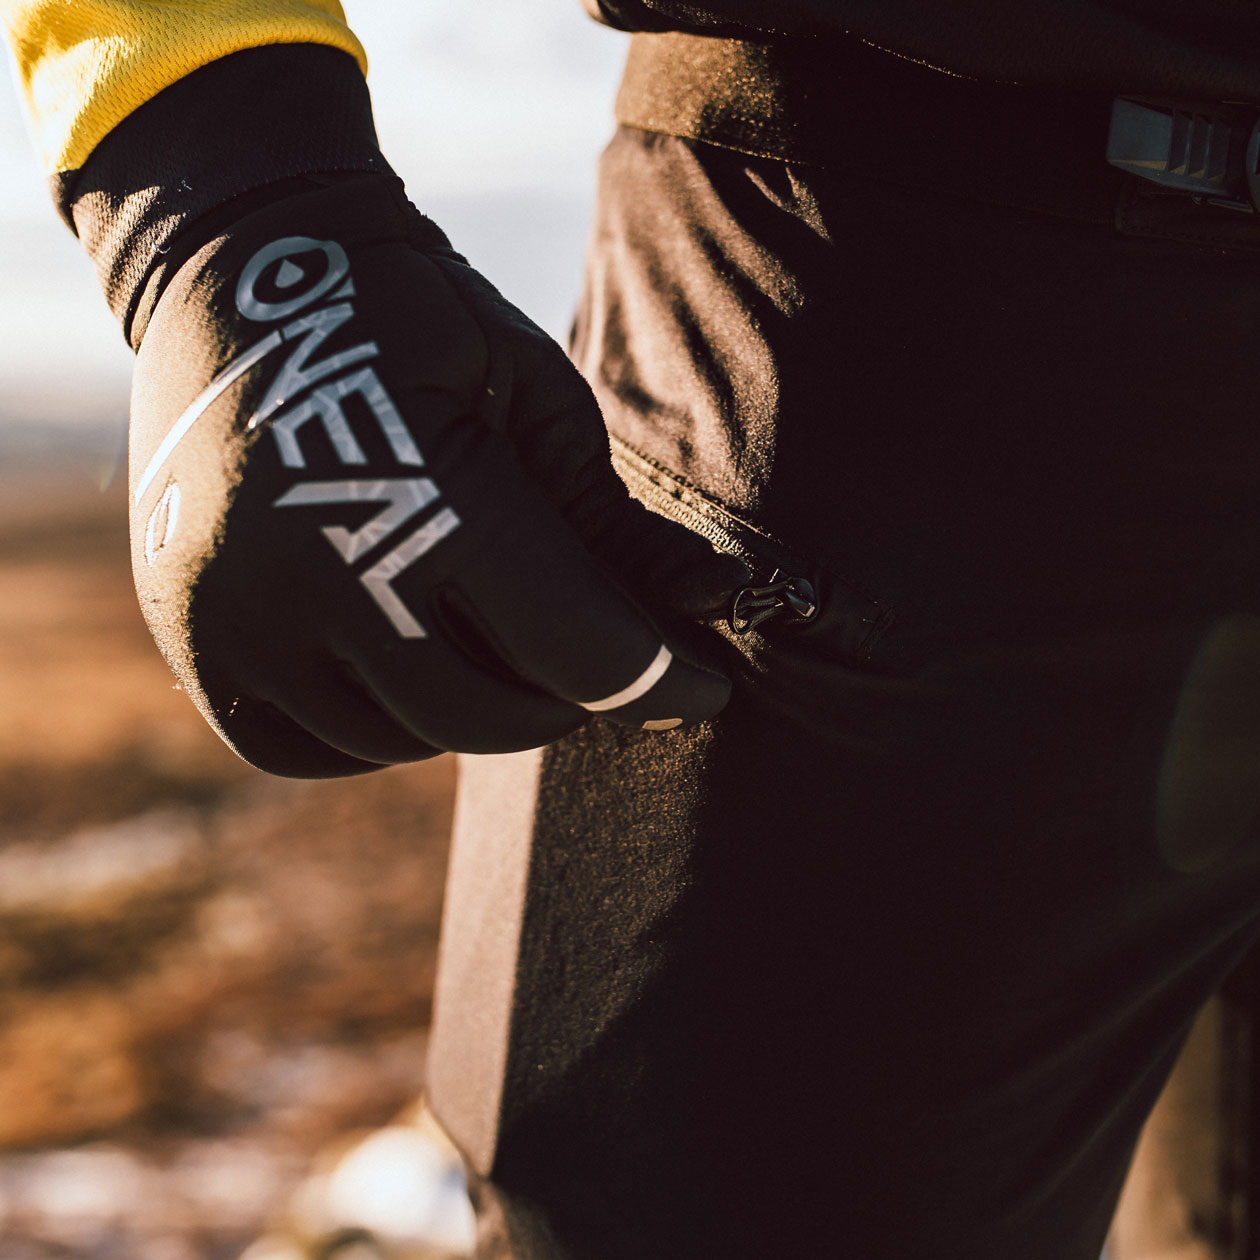 O'Neal Trailfinder Pant Review